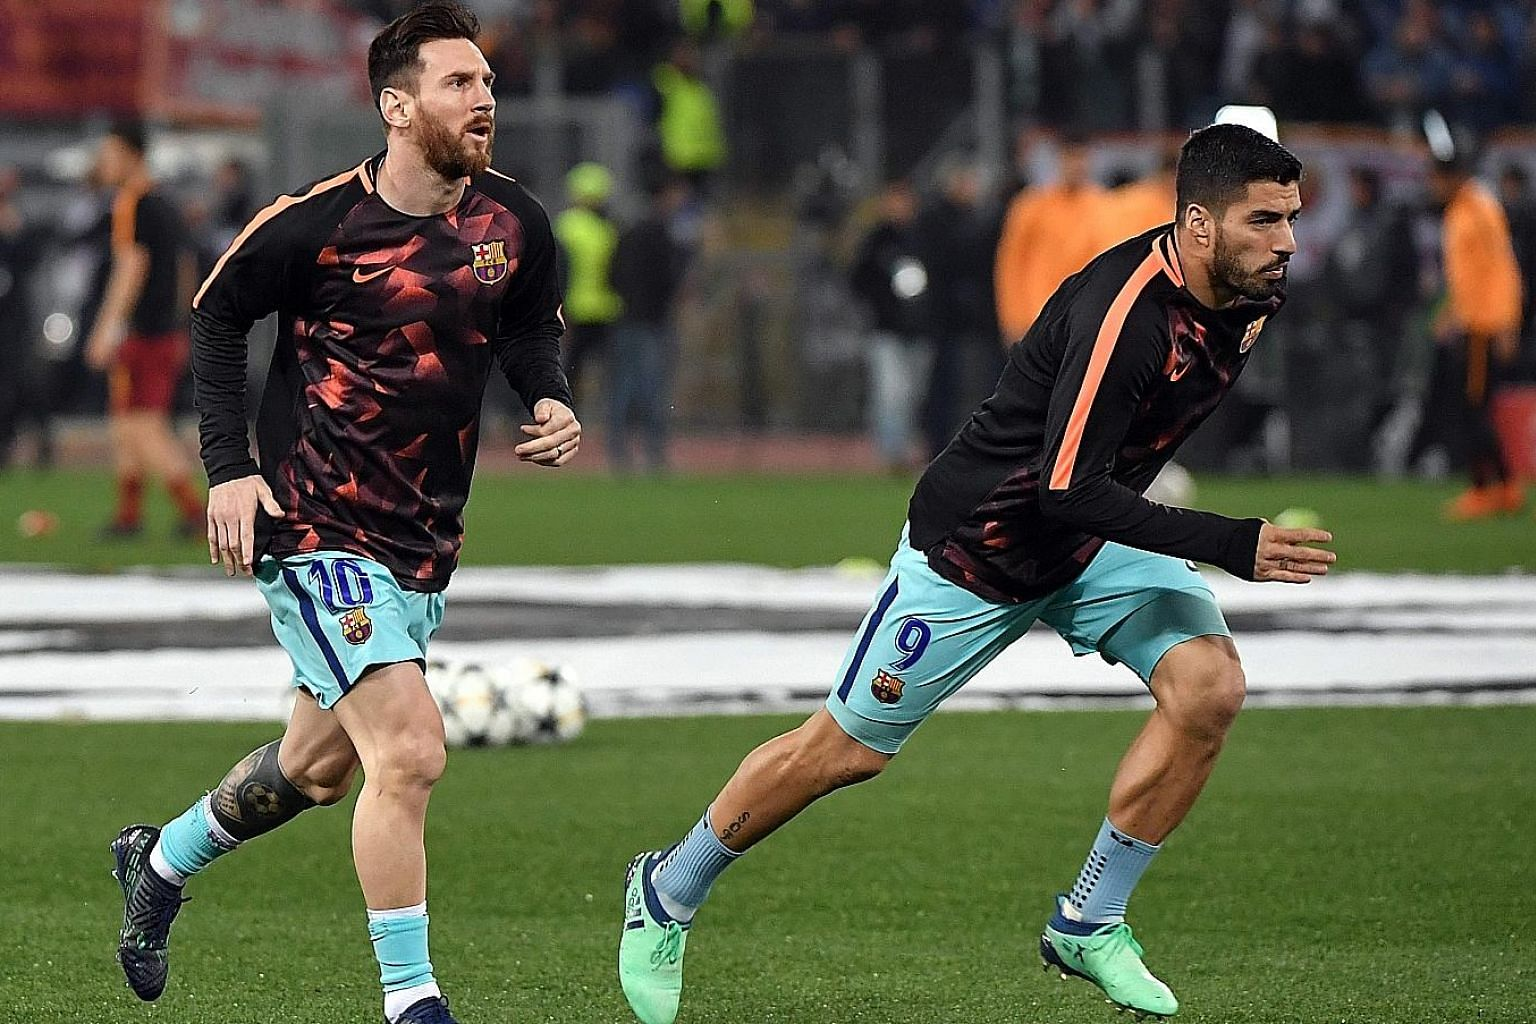 Barcelona's Lionel Messi (far left) and Luis Suarez warming up for Tuesday's Roma game. Manager Ernesto Valverde has challenged the side to rebound from their Champions League exit and attempt to win the LaLiga and King's Cup double.